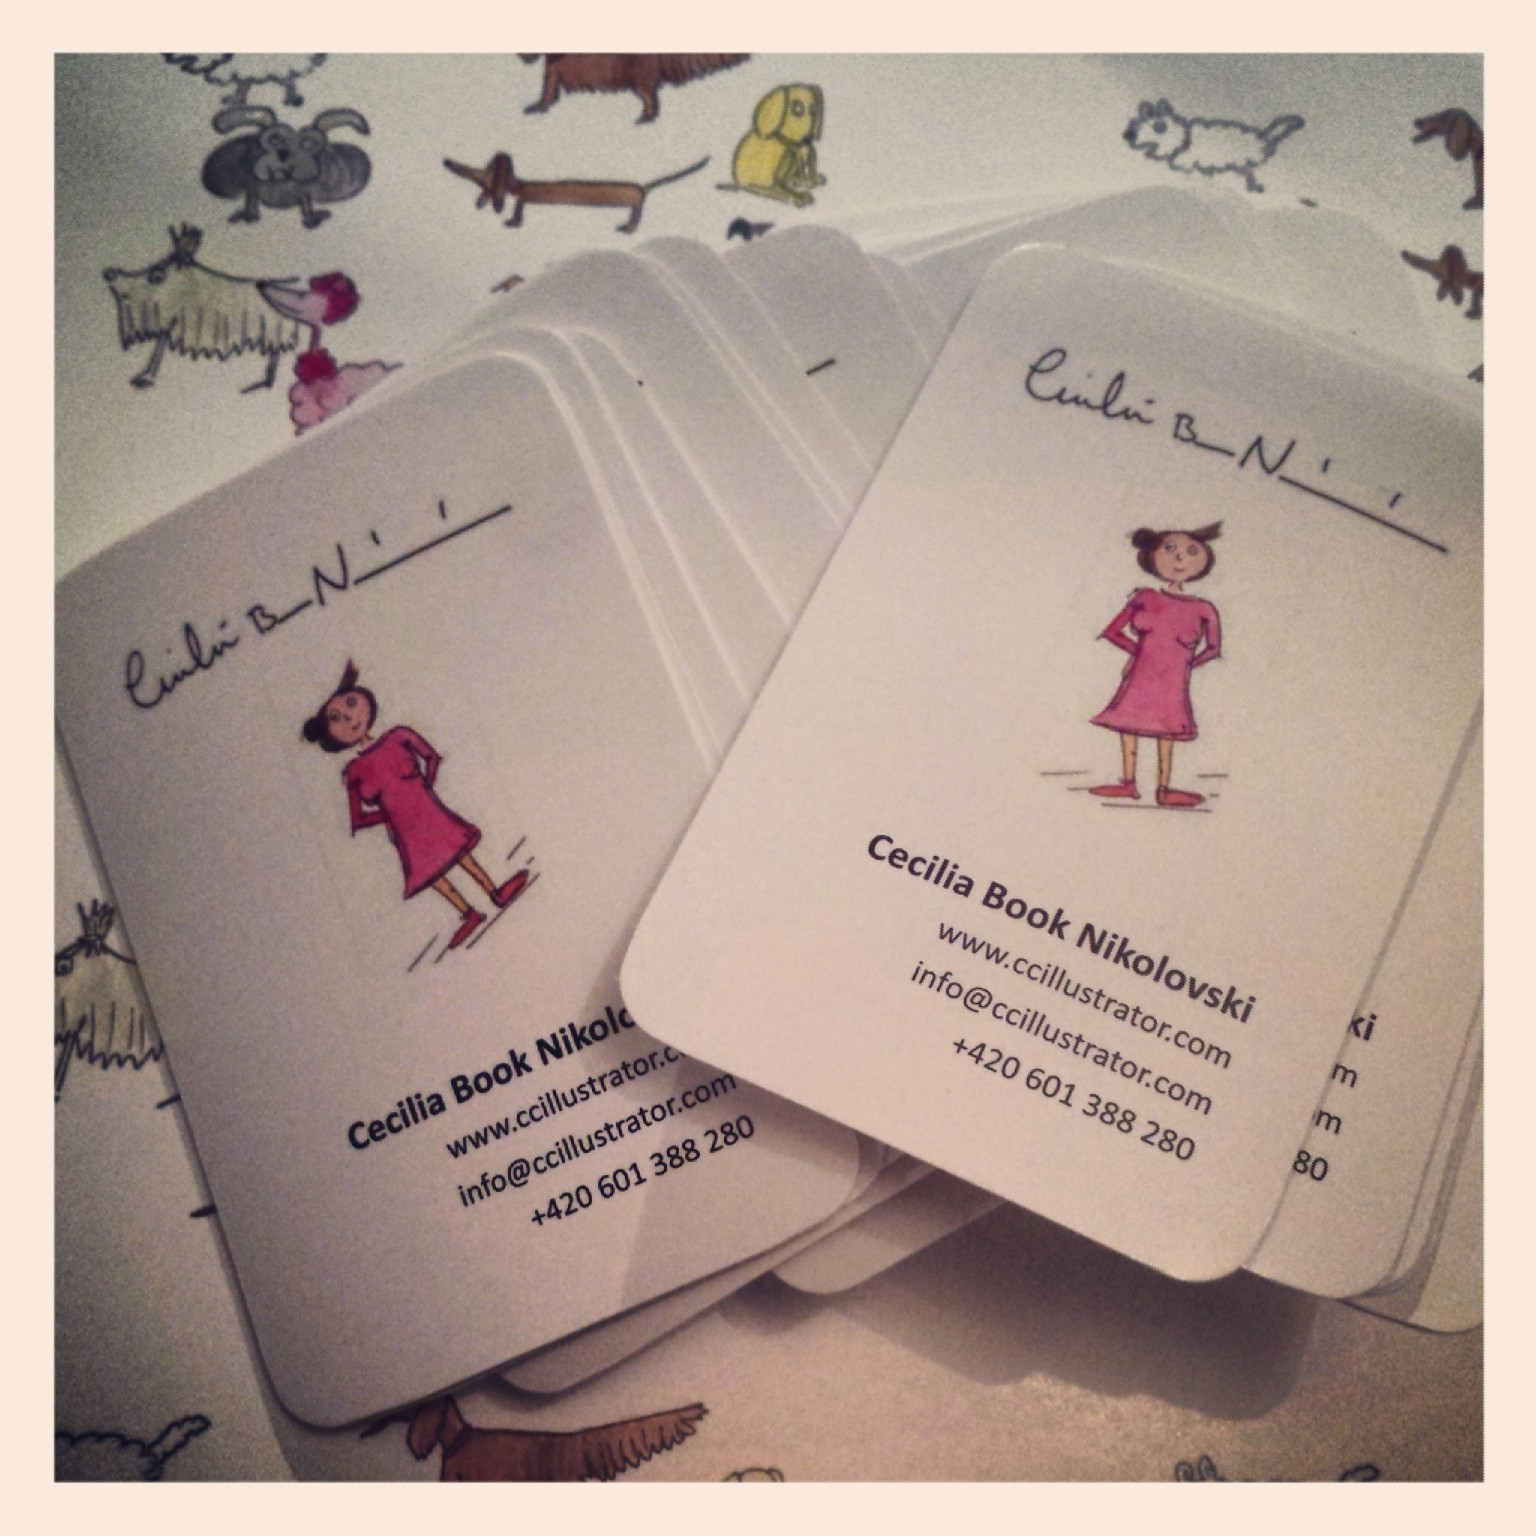 Cecilia Book Nikolovski » Fun business cards